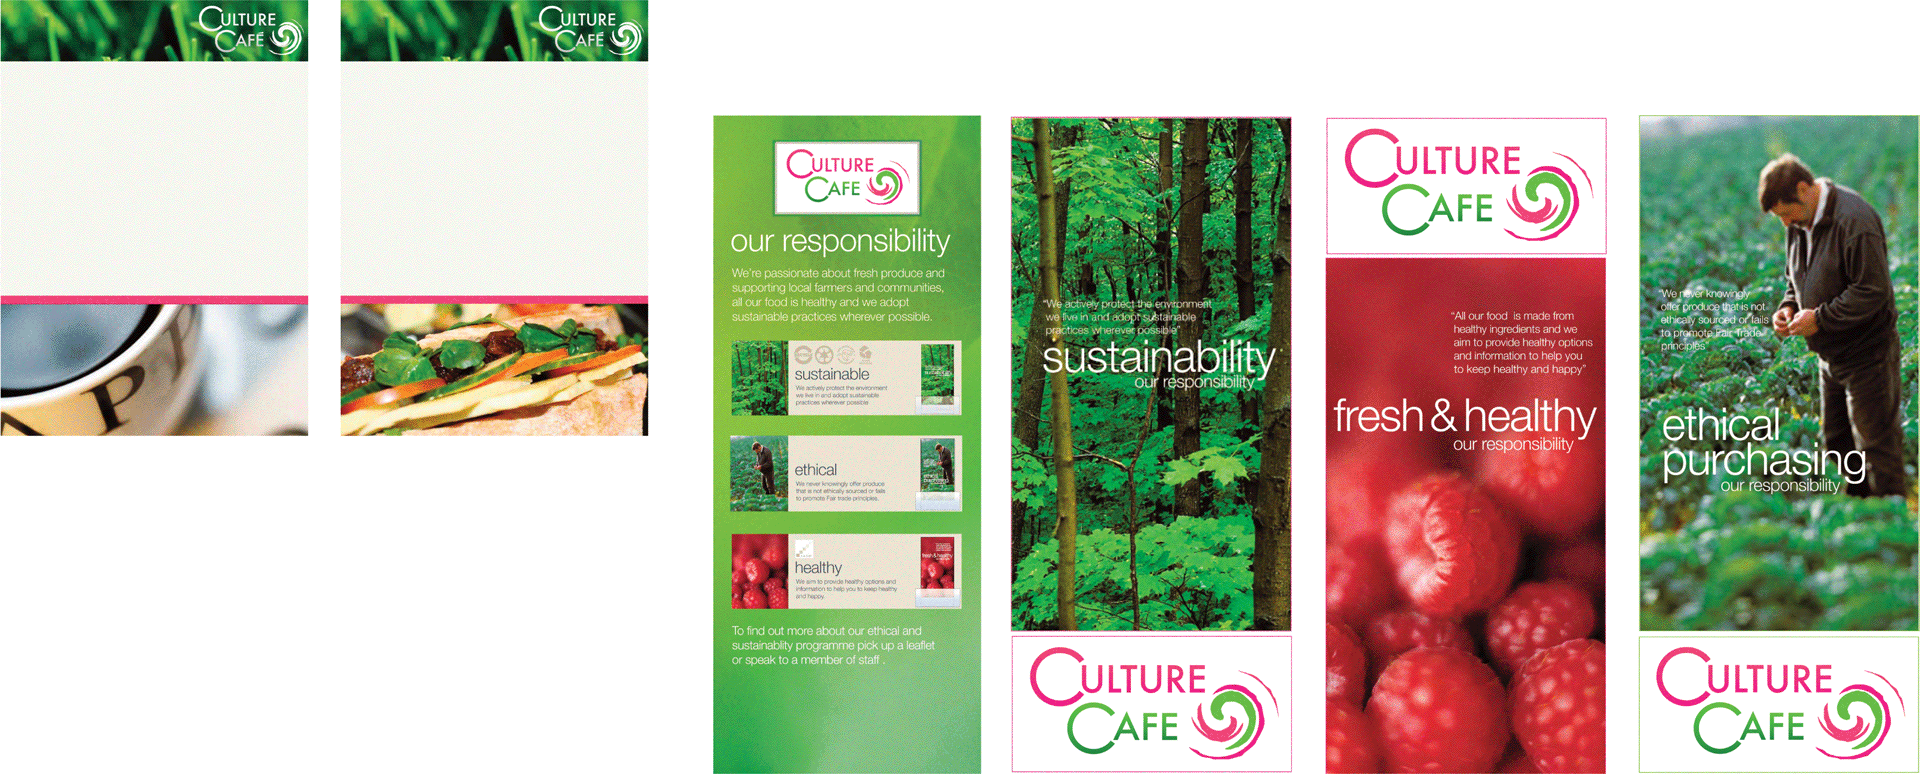 Culture Cafe Menus